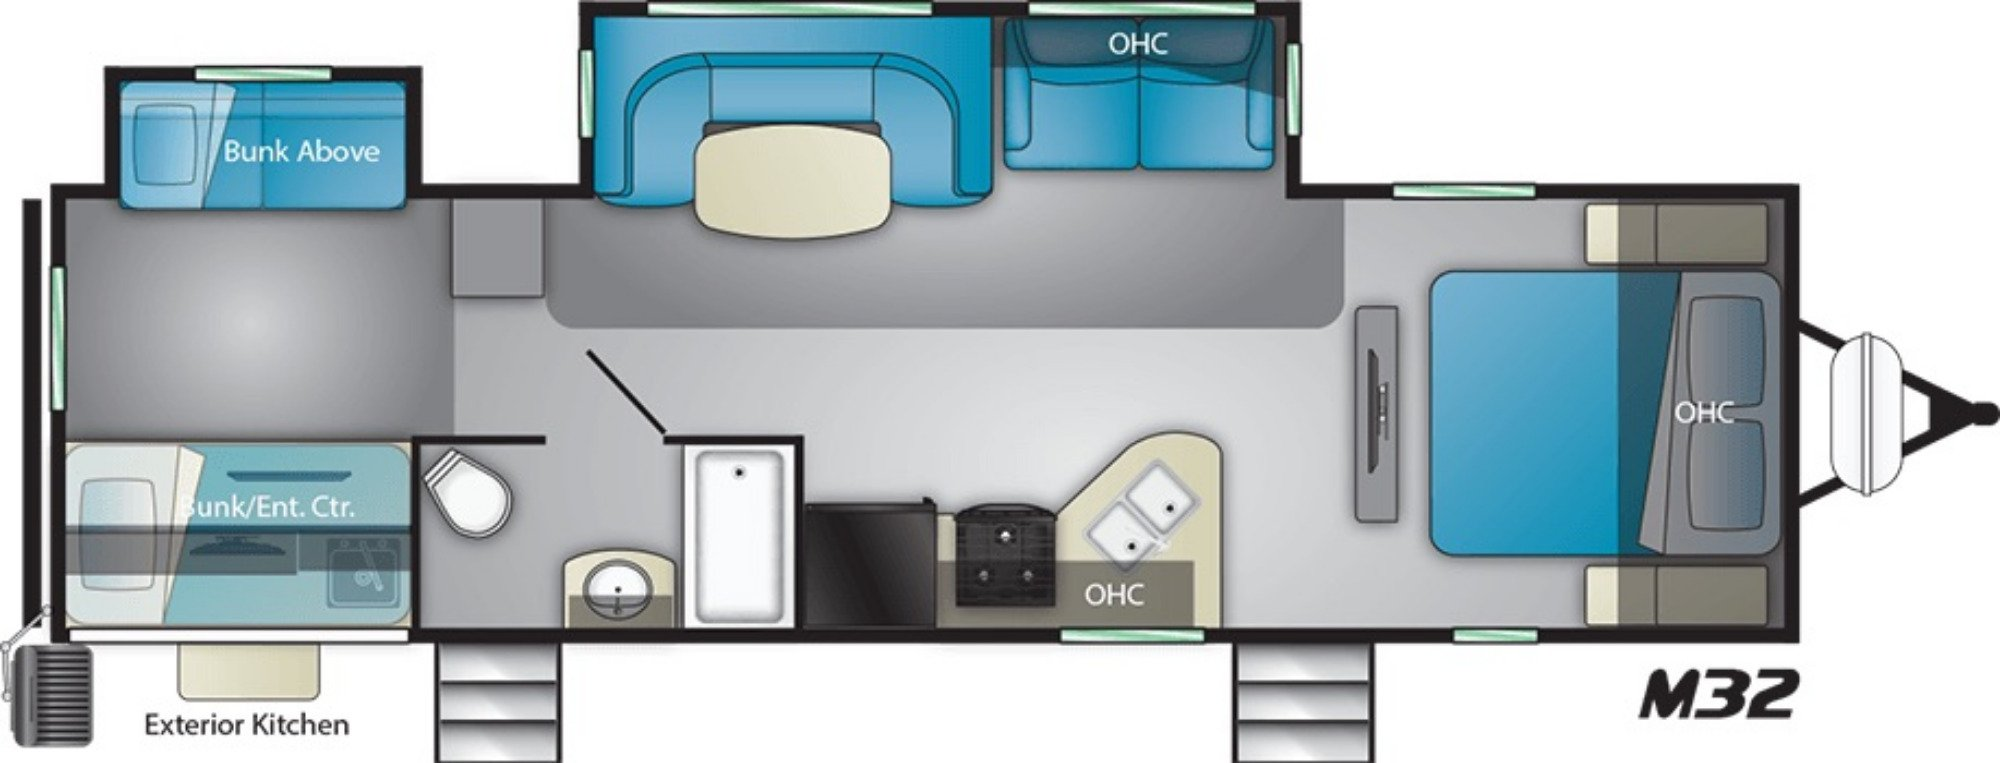 View Floor Plan for 2021 HEARTLAND MALLARD M32